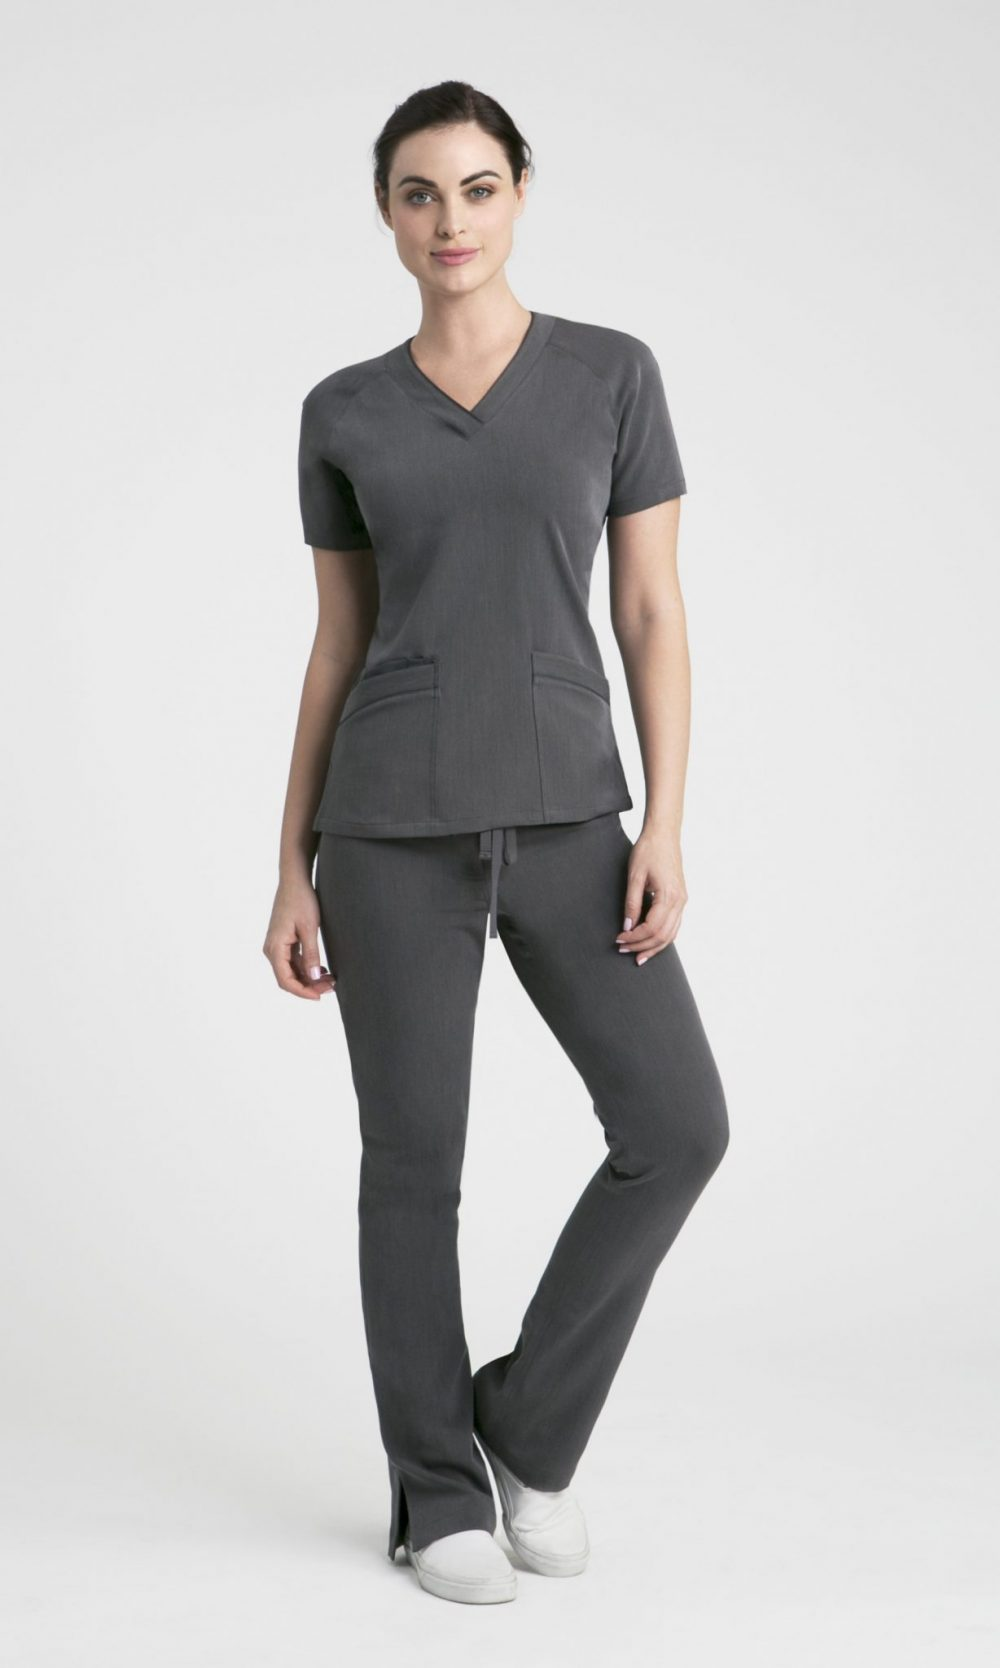 medical apparel